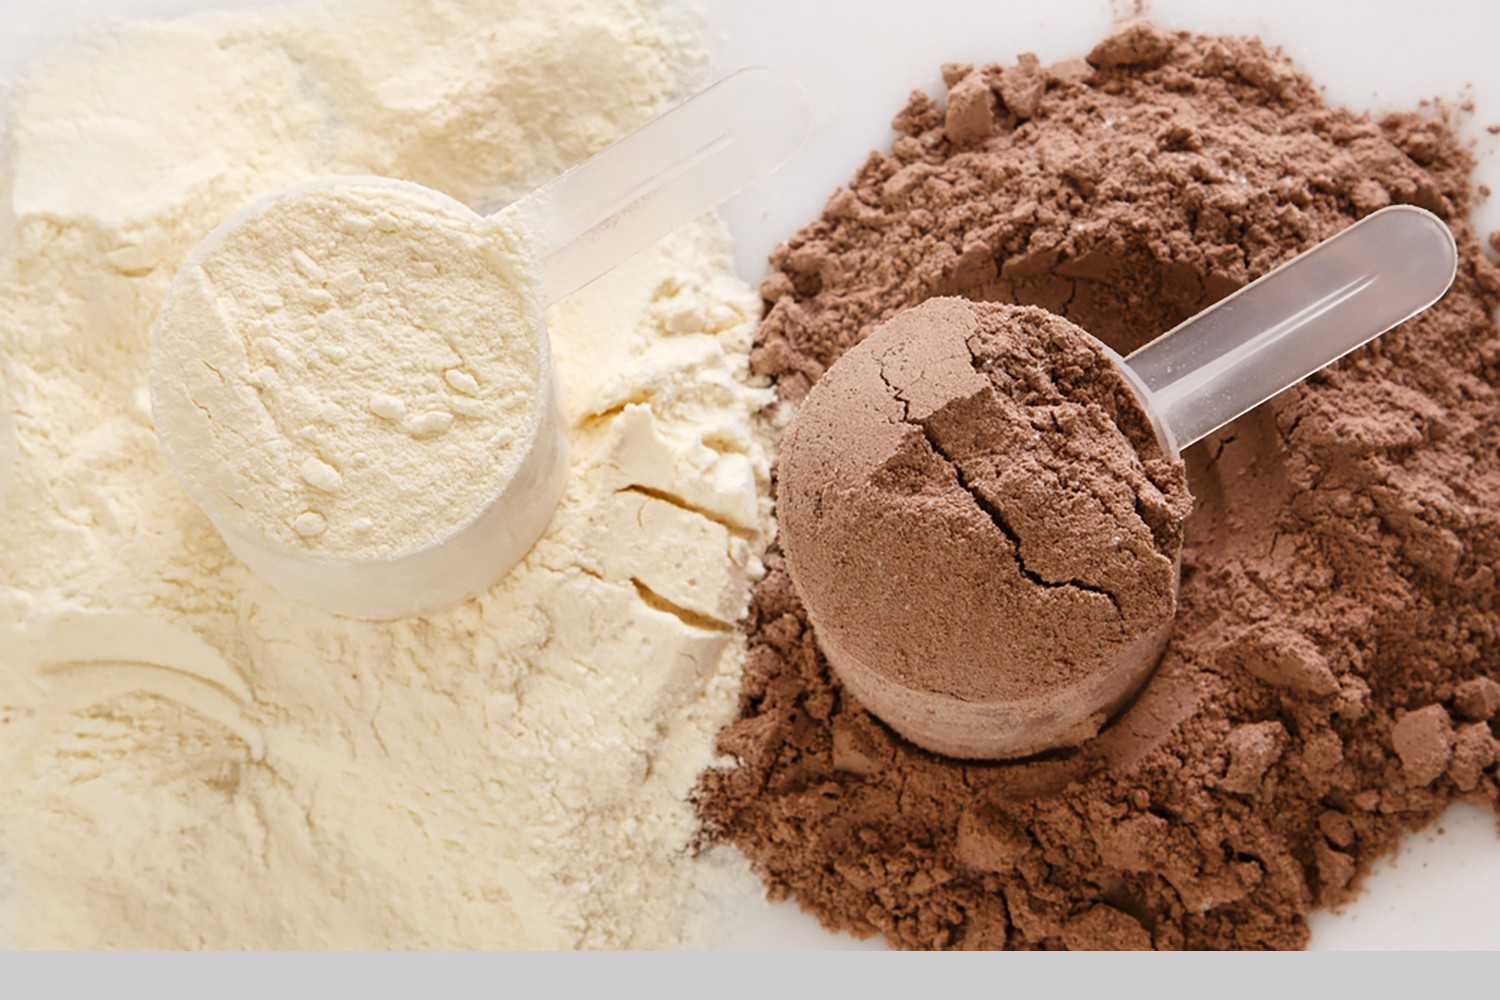 Best Protein Powder 2020.Best Protein Powders For Men And Women For 2020 Virtueup